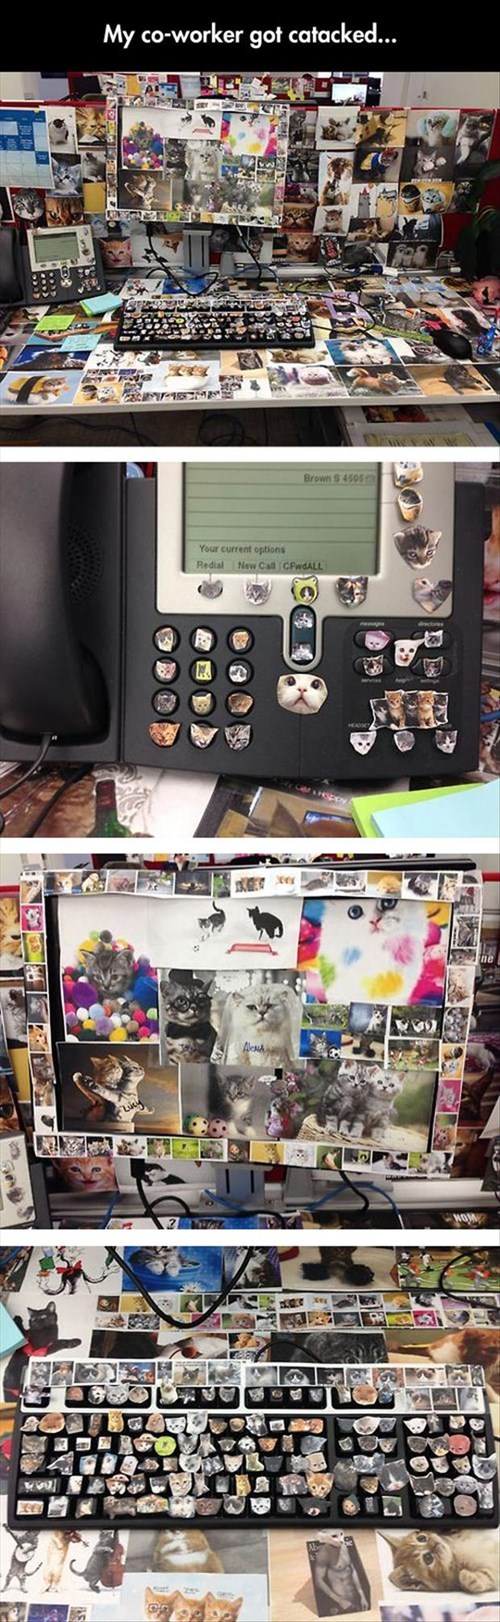 monday thru friday,cubicle prank,prank,Cats,cubicle,g rated